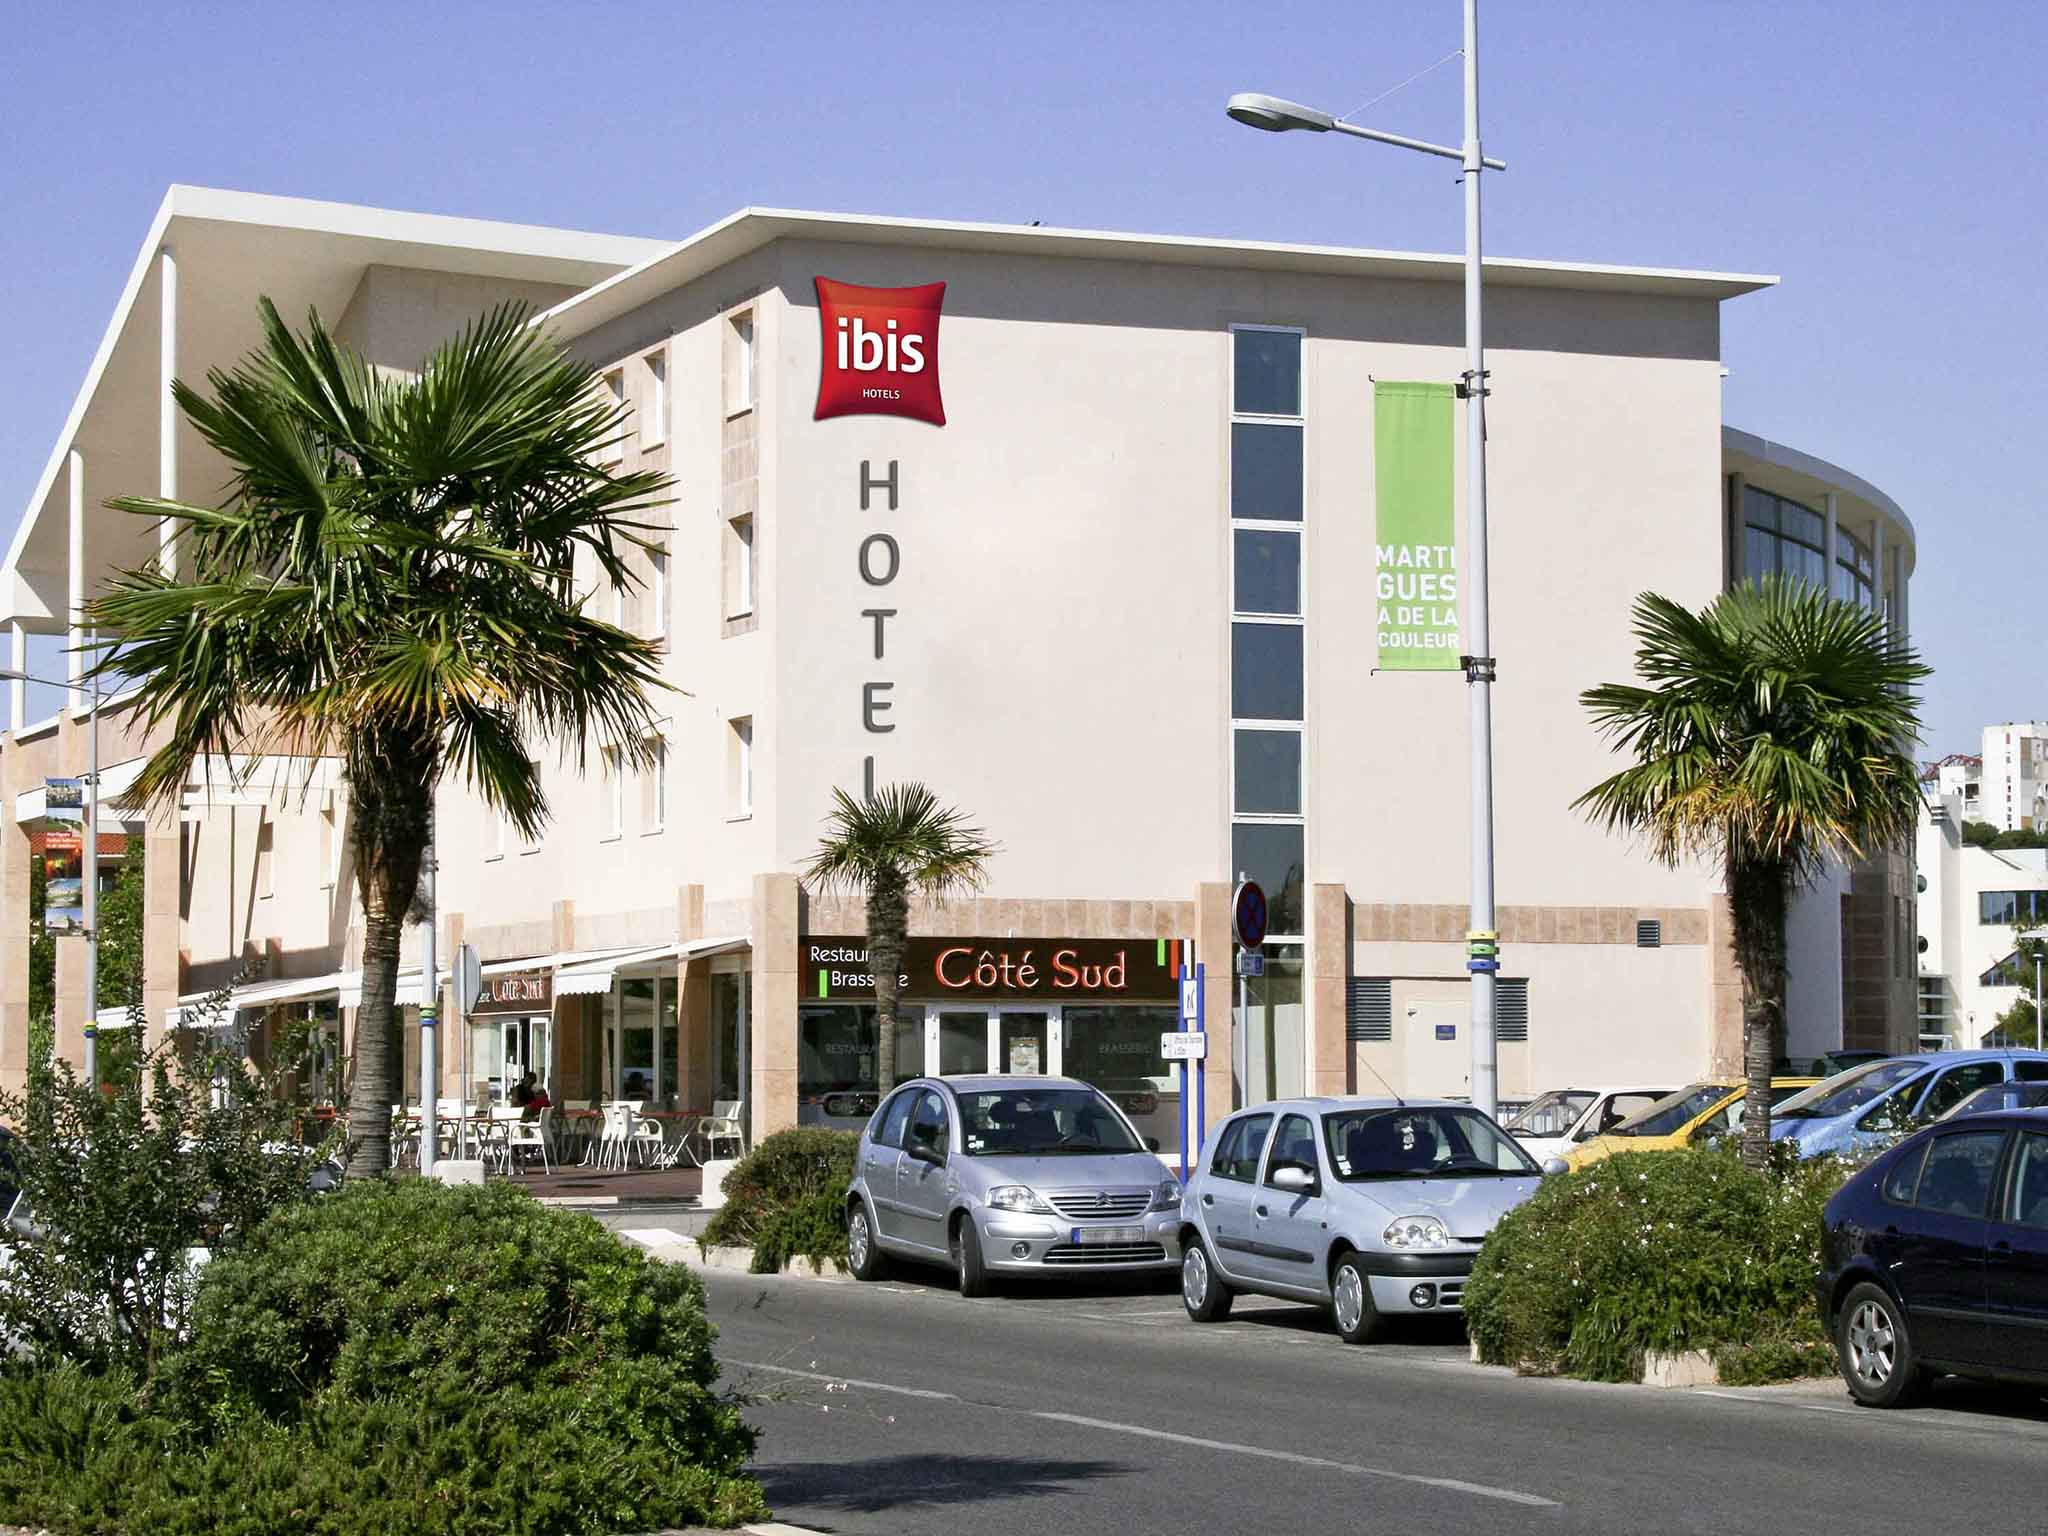 Hotel in martigues ibis martigues for Hotels ibis france